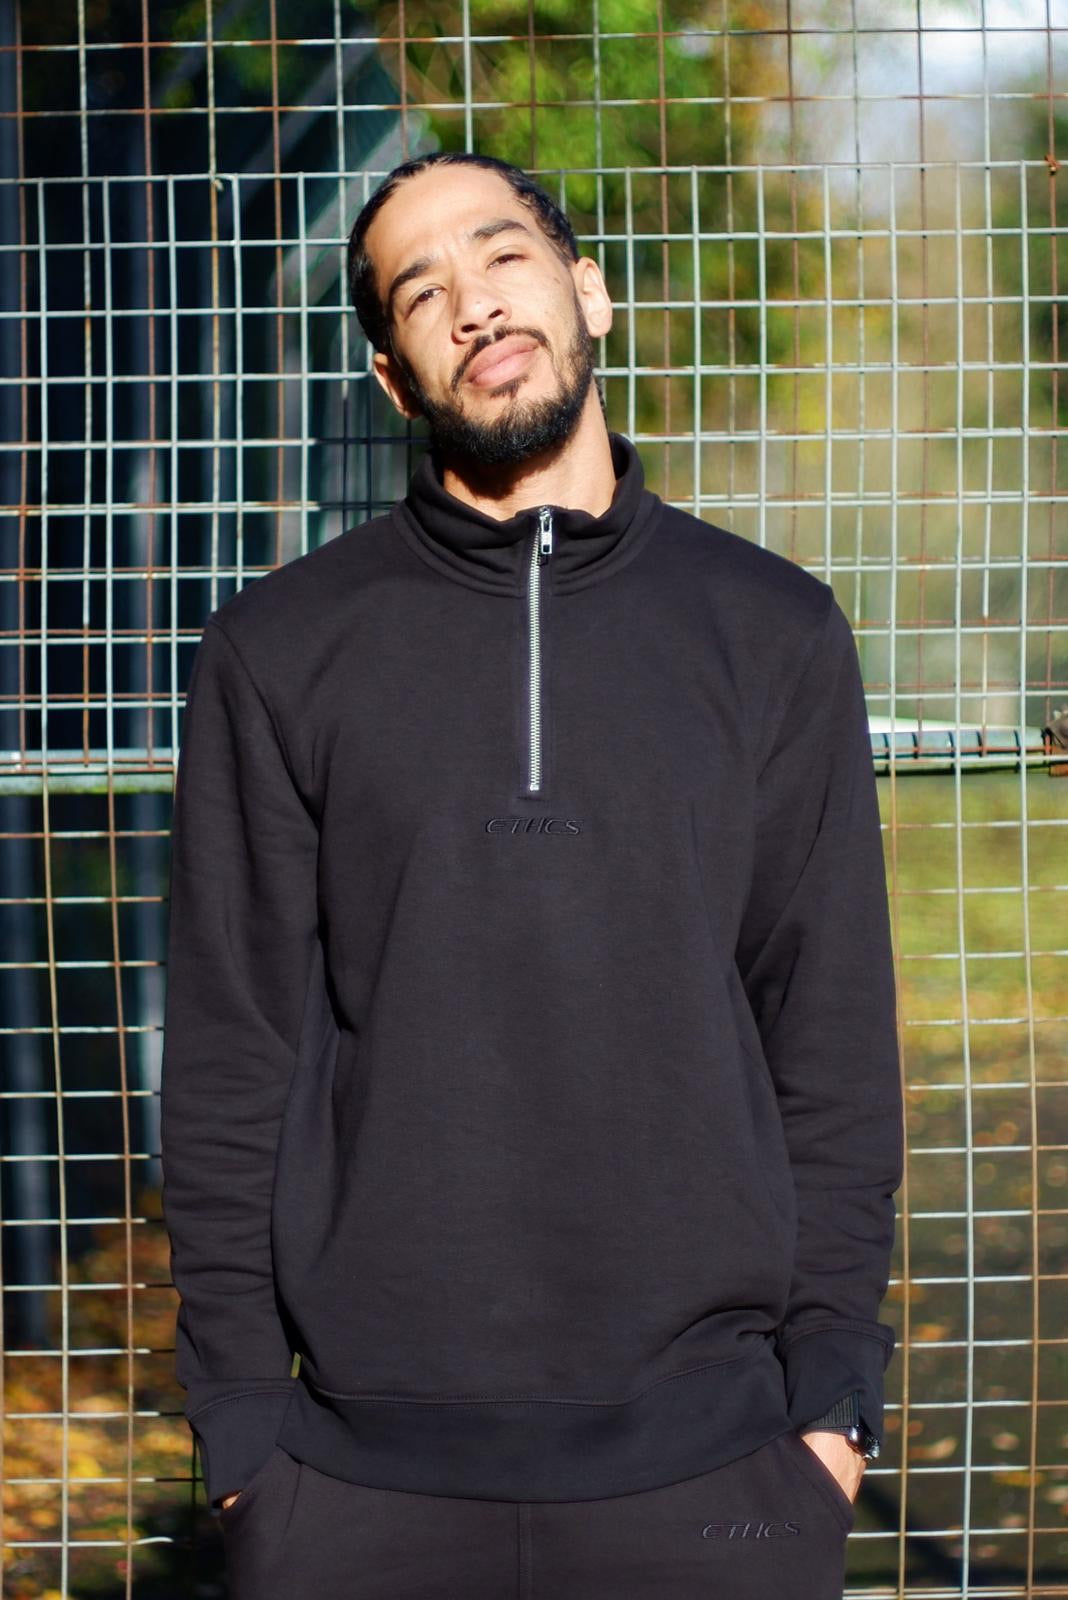 Quarter zip sweater - Ethics and Antics vegan nagev vgang clothing